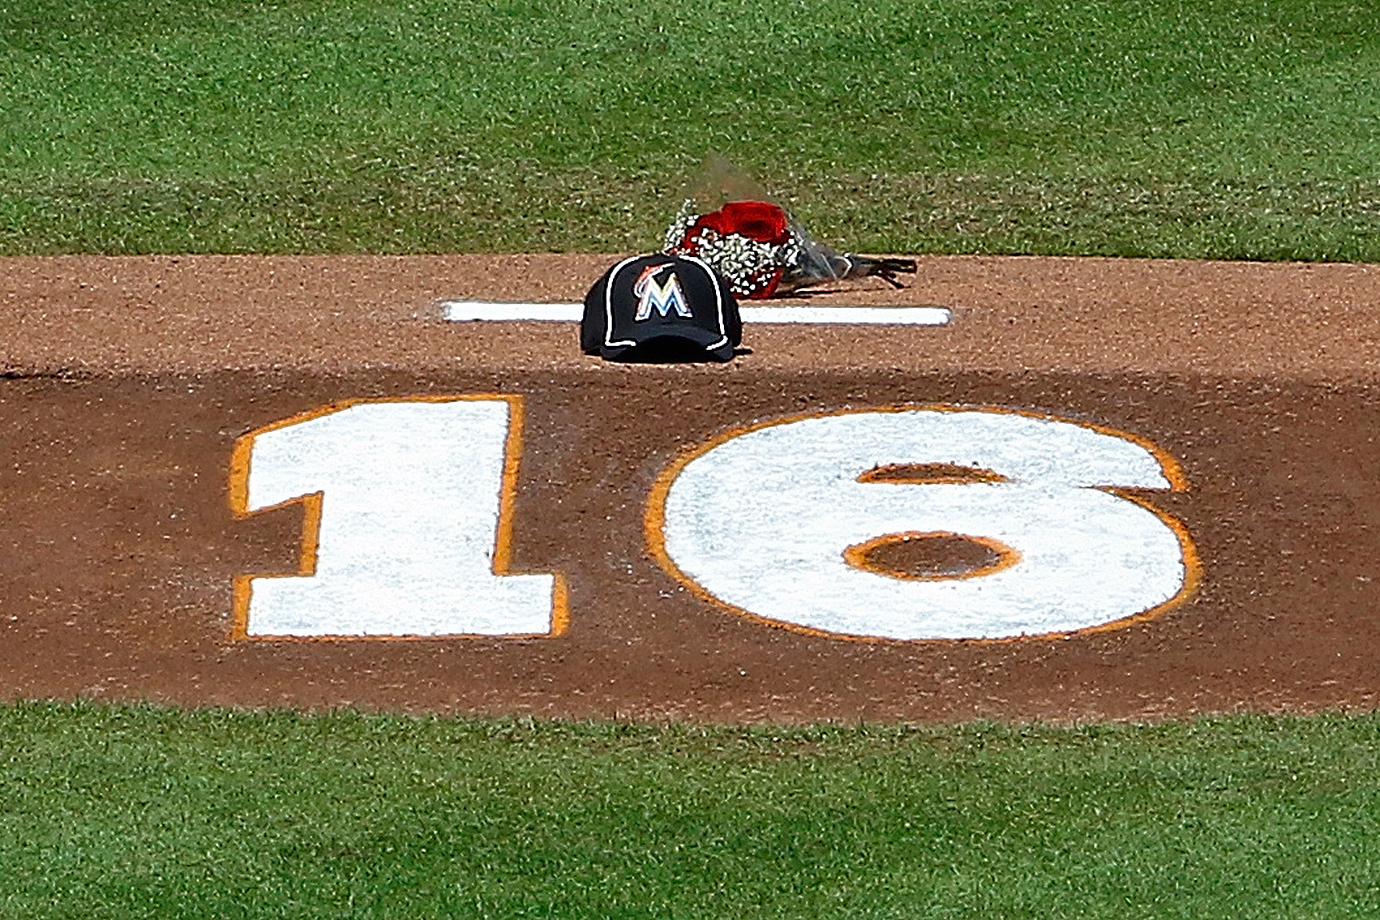 Flowers, a hat and the number of Jose Fernandez are shown on the pitching mound on Sunday, Sept. 25, 2016 at Marlins Park in Miami.